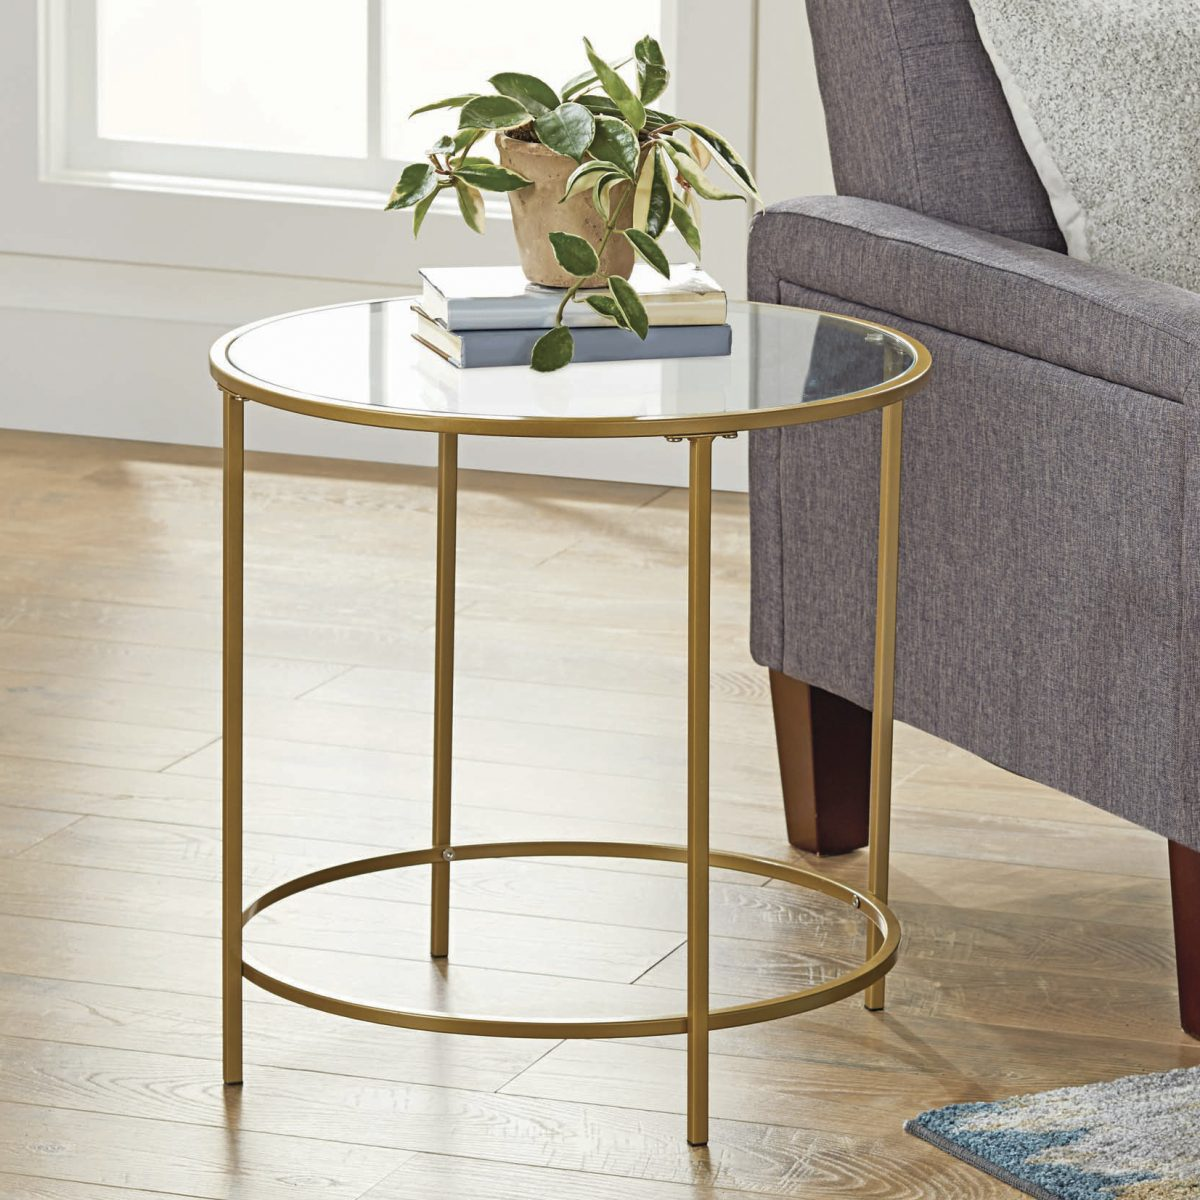 Better Homes & Gardens Nola Side Table